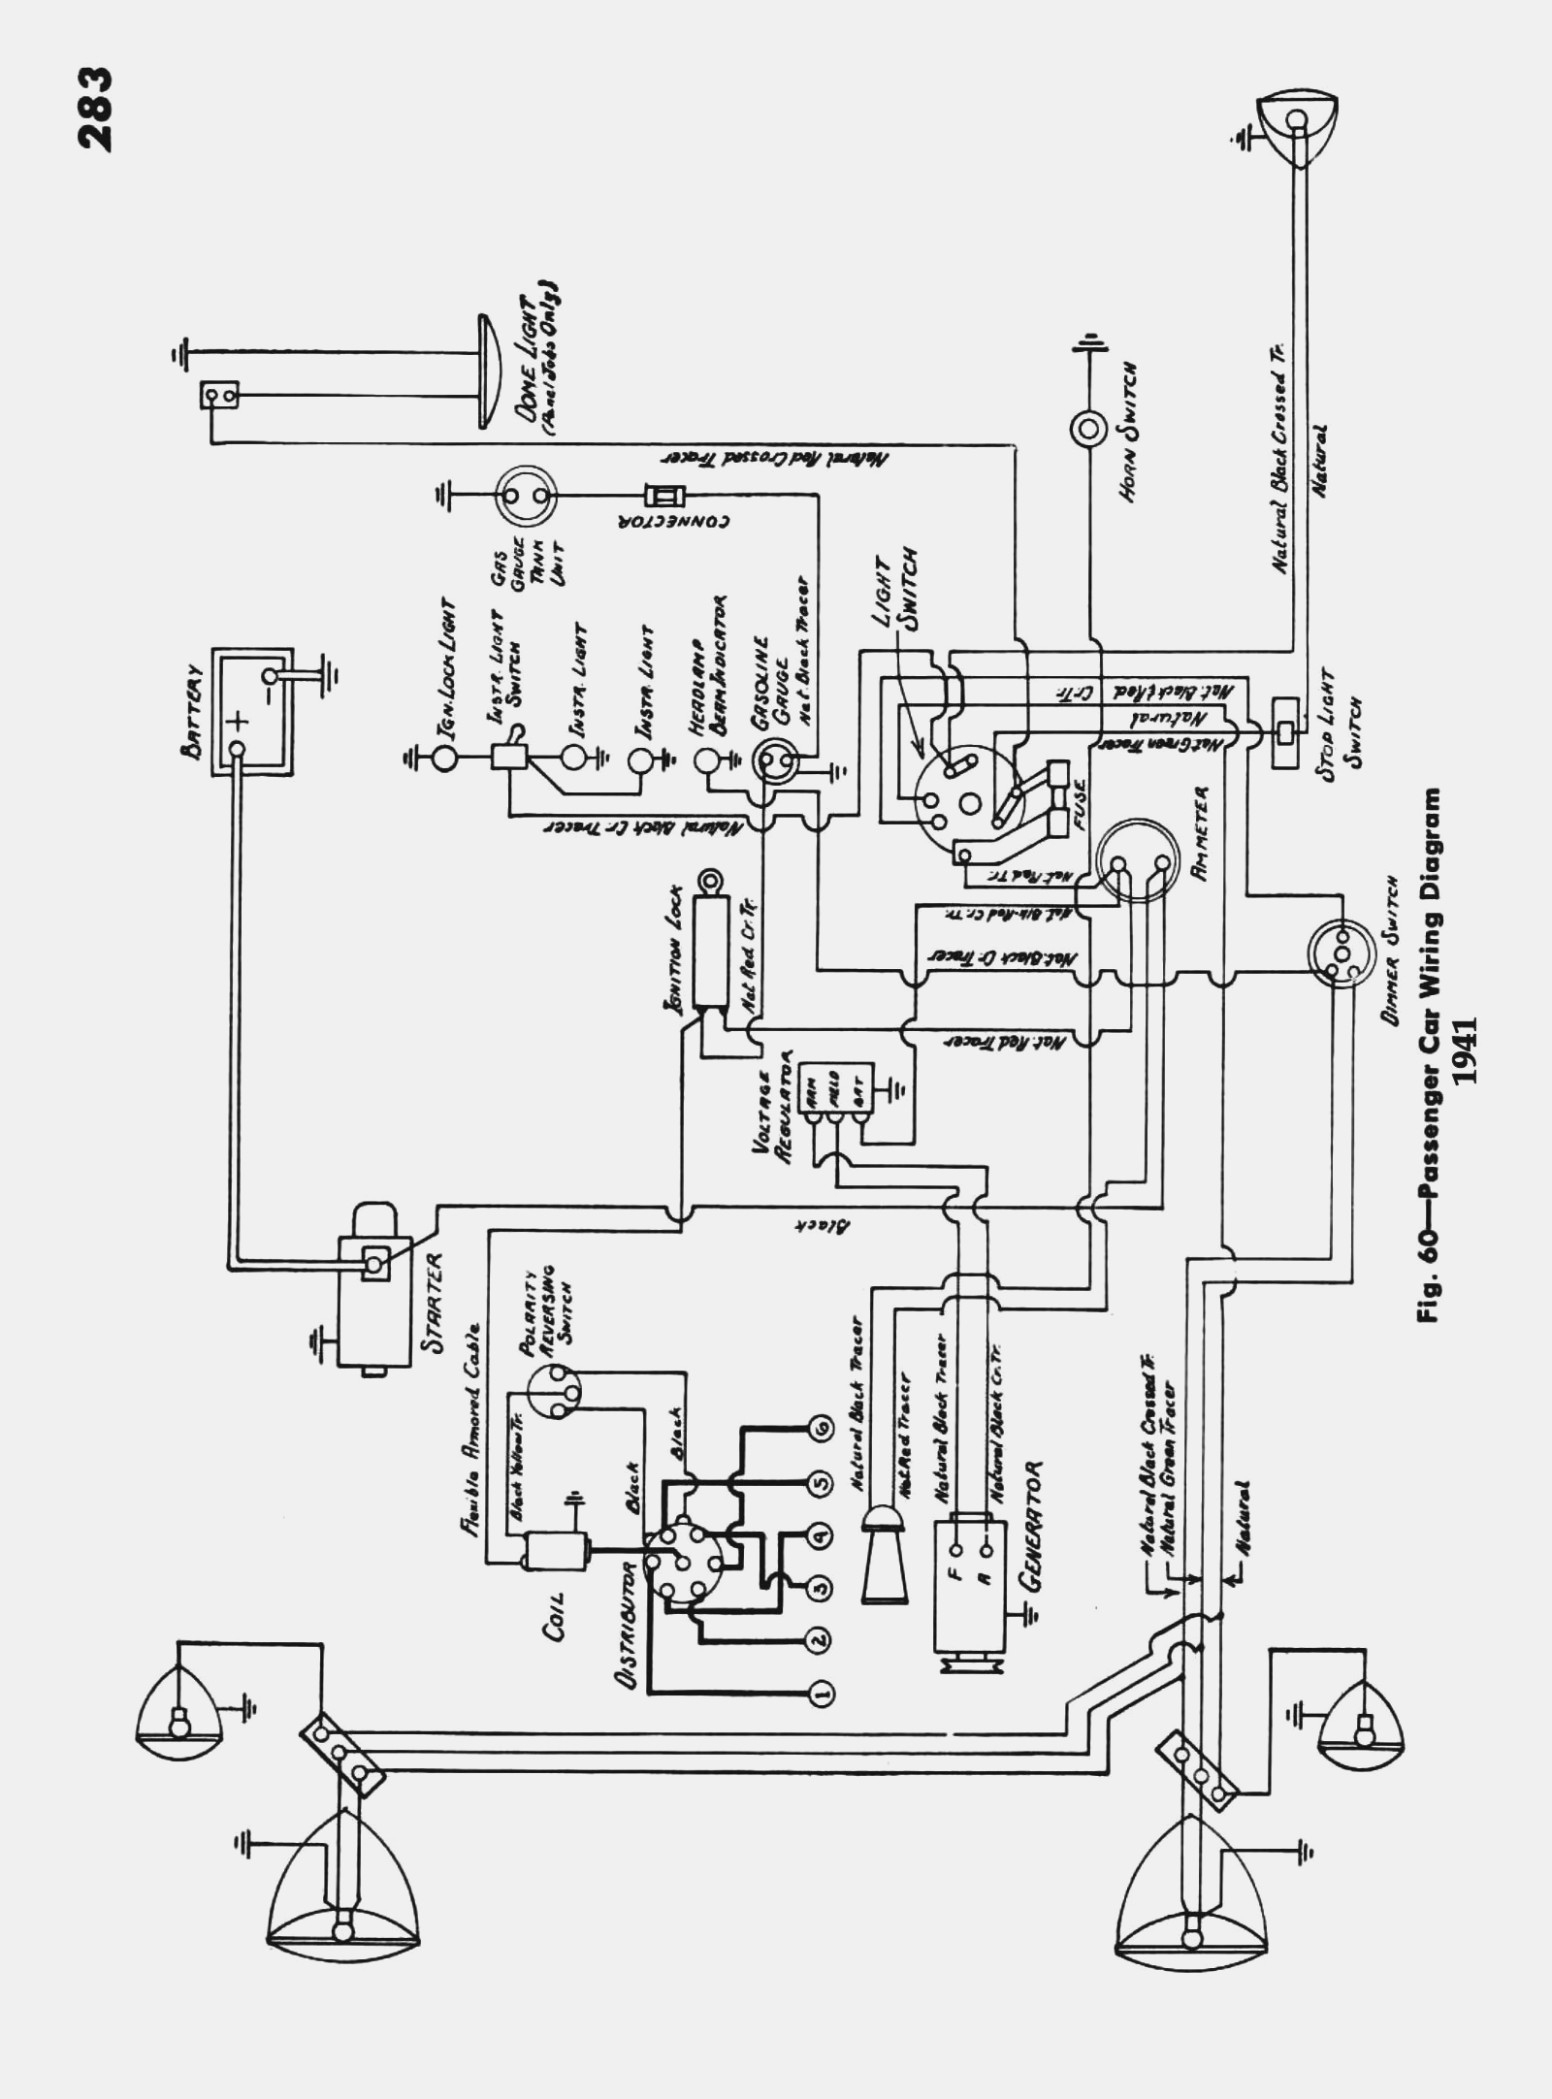 International Truck Dpf Wiring Diagram | Wiring Diagram - International Truck Wiring Diagram Manual